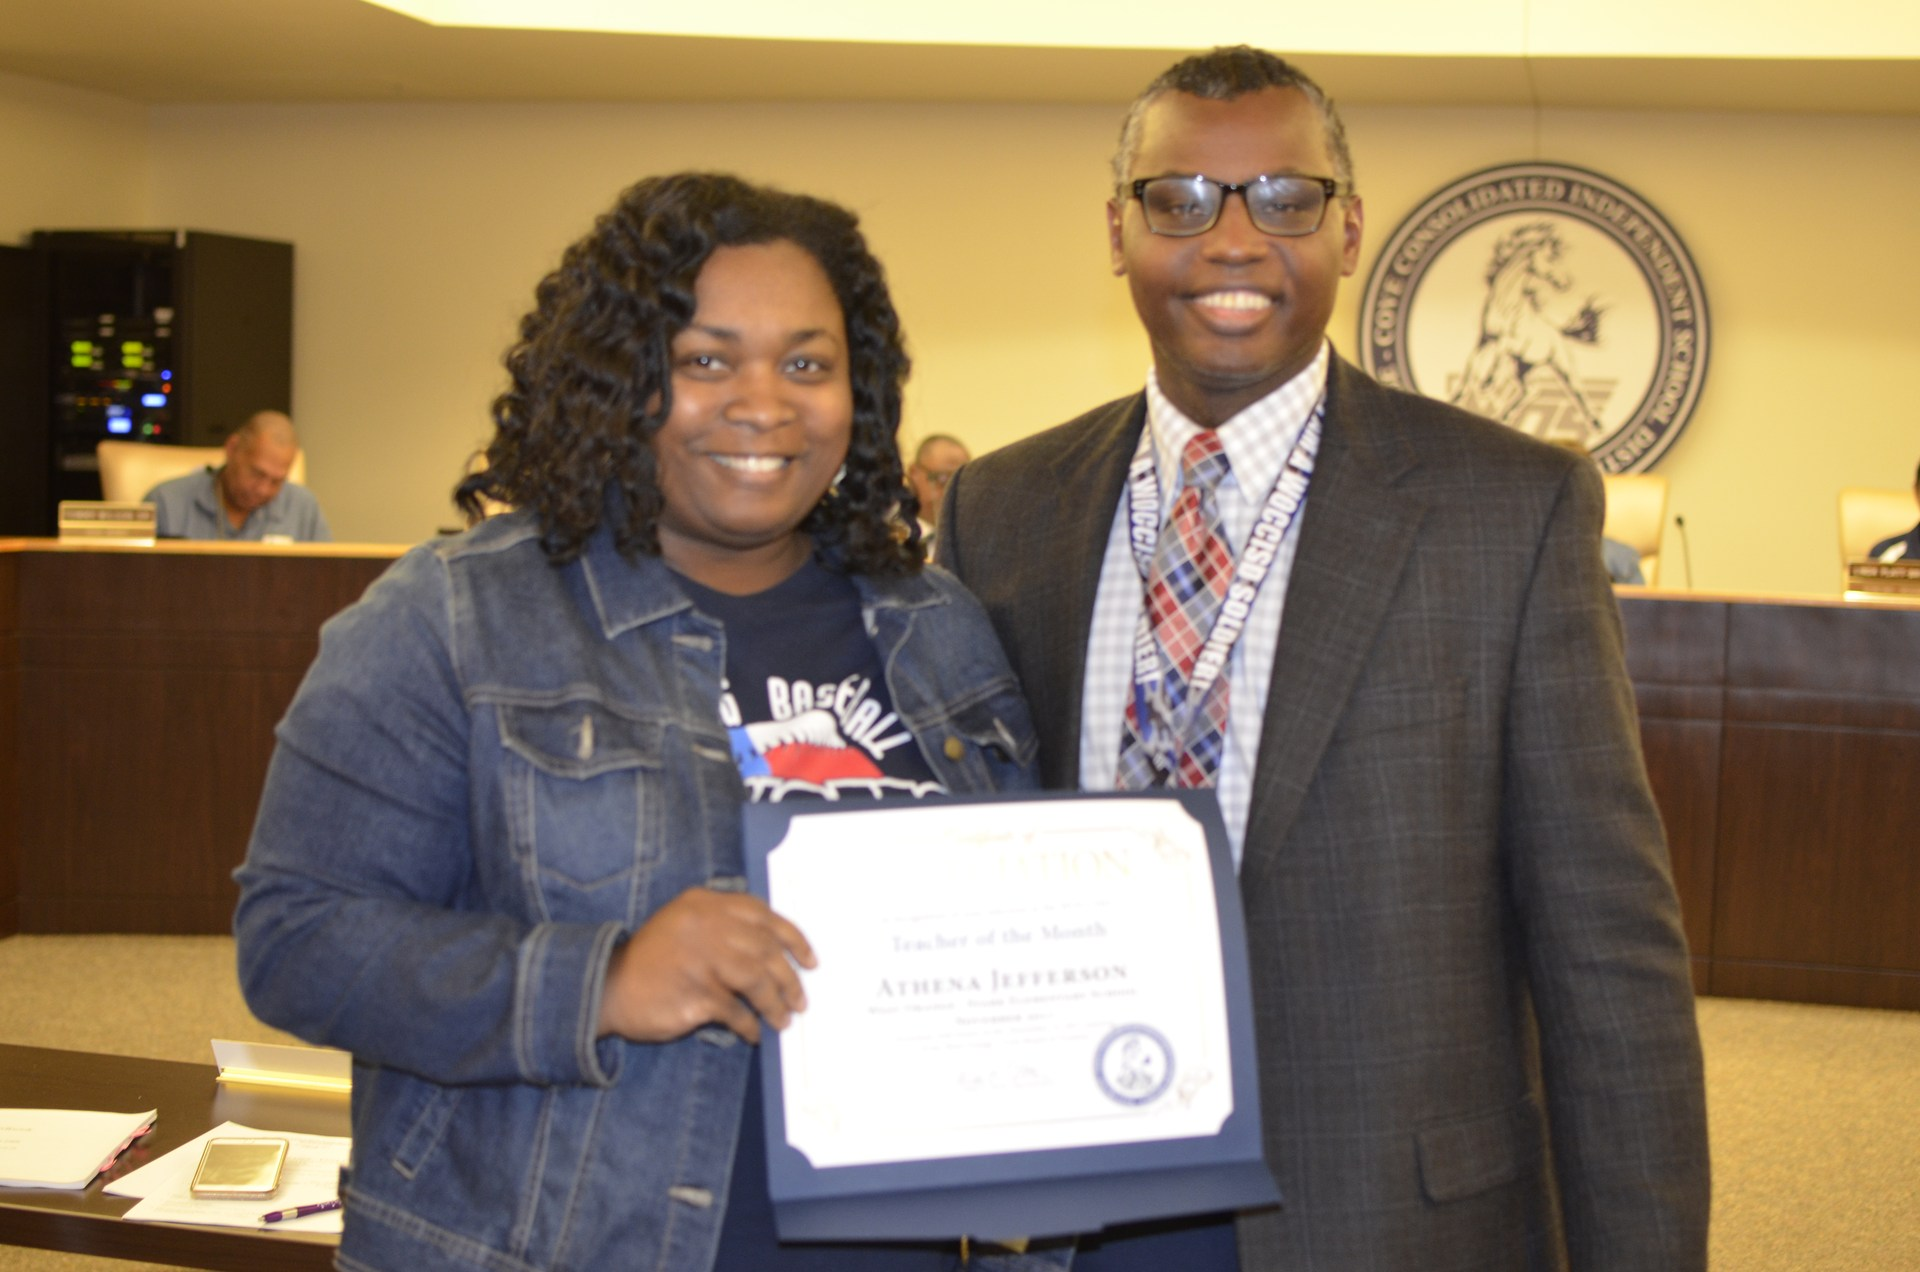 Athena Jefferson recognized as Teacher of the Month